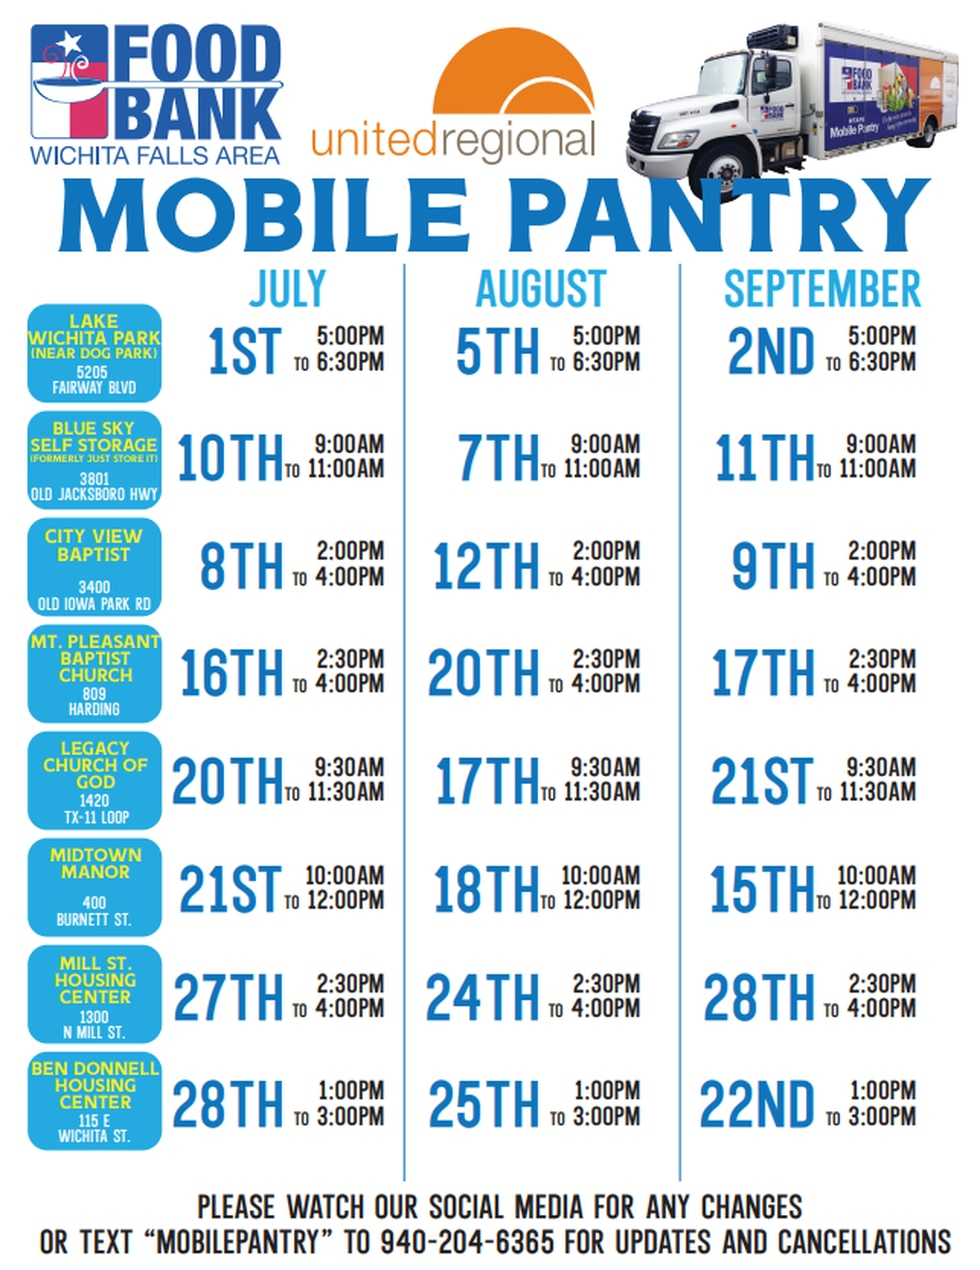 WF Area Food Bank Mobile Pantry scheduled throughout June